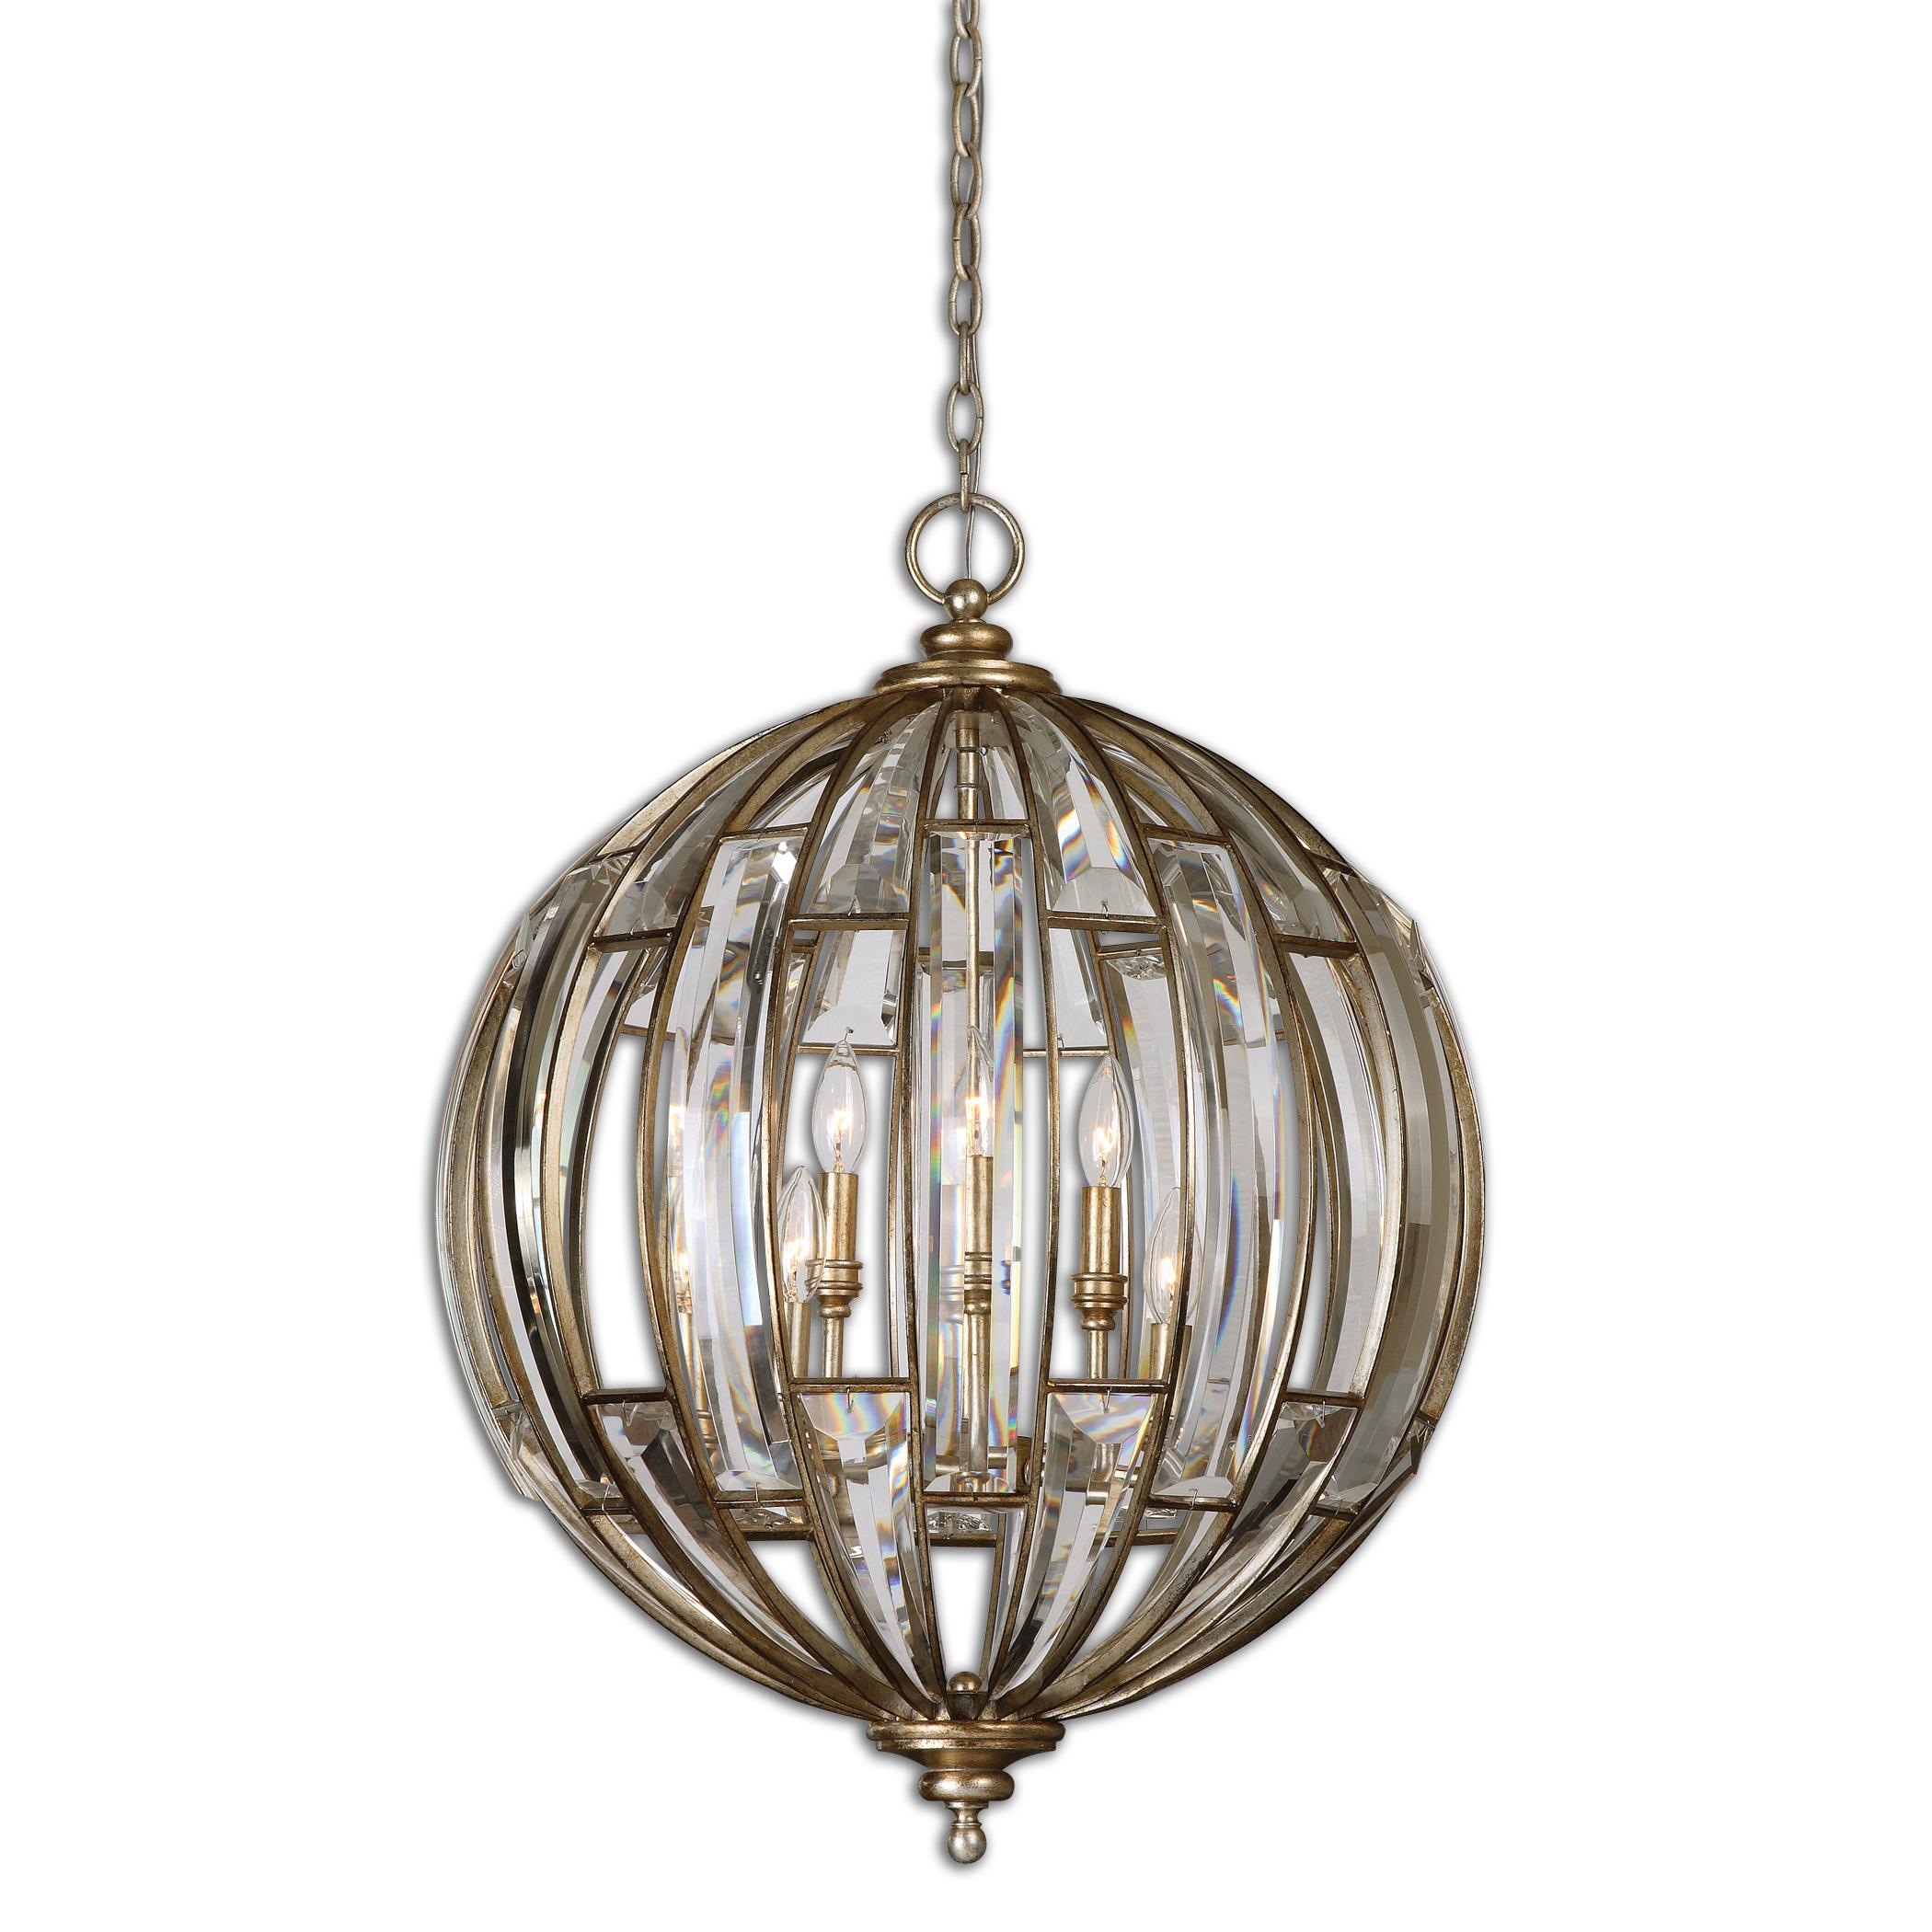 Lighting Fixtures - Pendant Lights Uttermost Vicentina 6 Light Sphere Pendant by Uttermost at Miller Waldrop Furniture and Decor